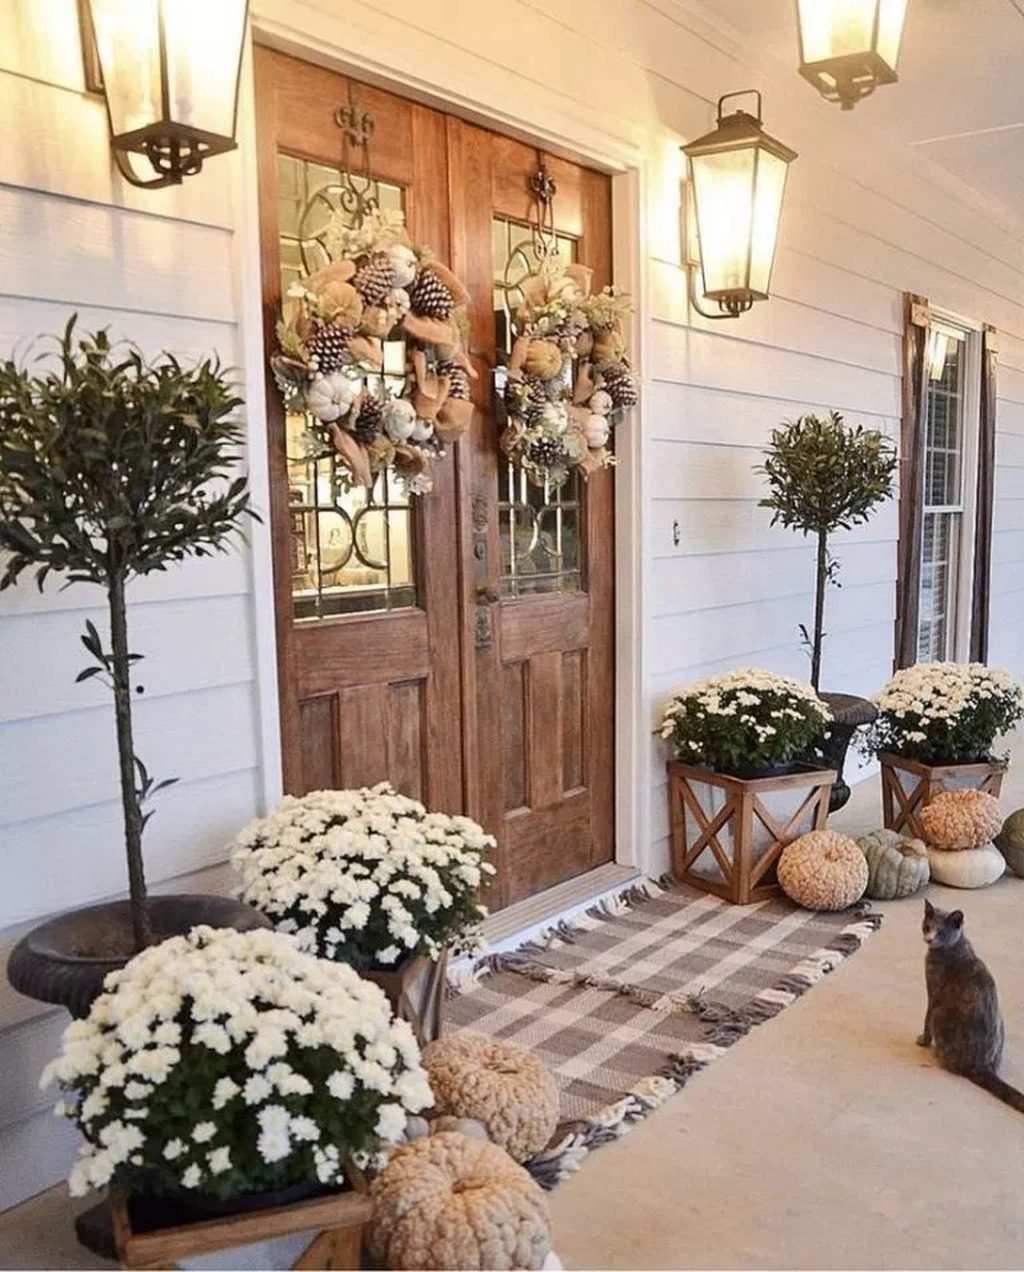 Inspiring Farmhouse Front Porch Decor Ideas 19